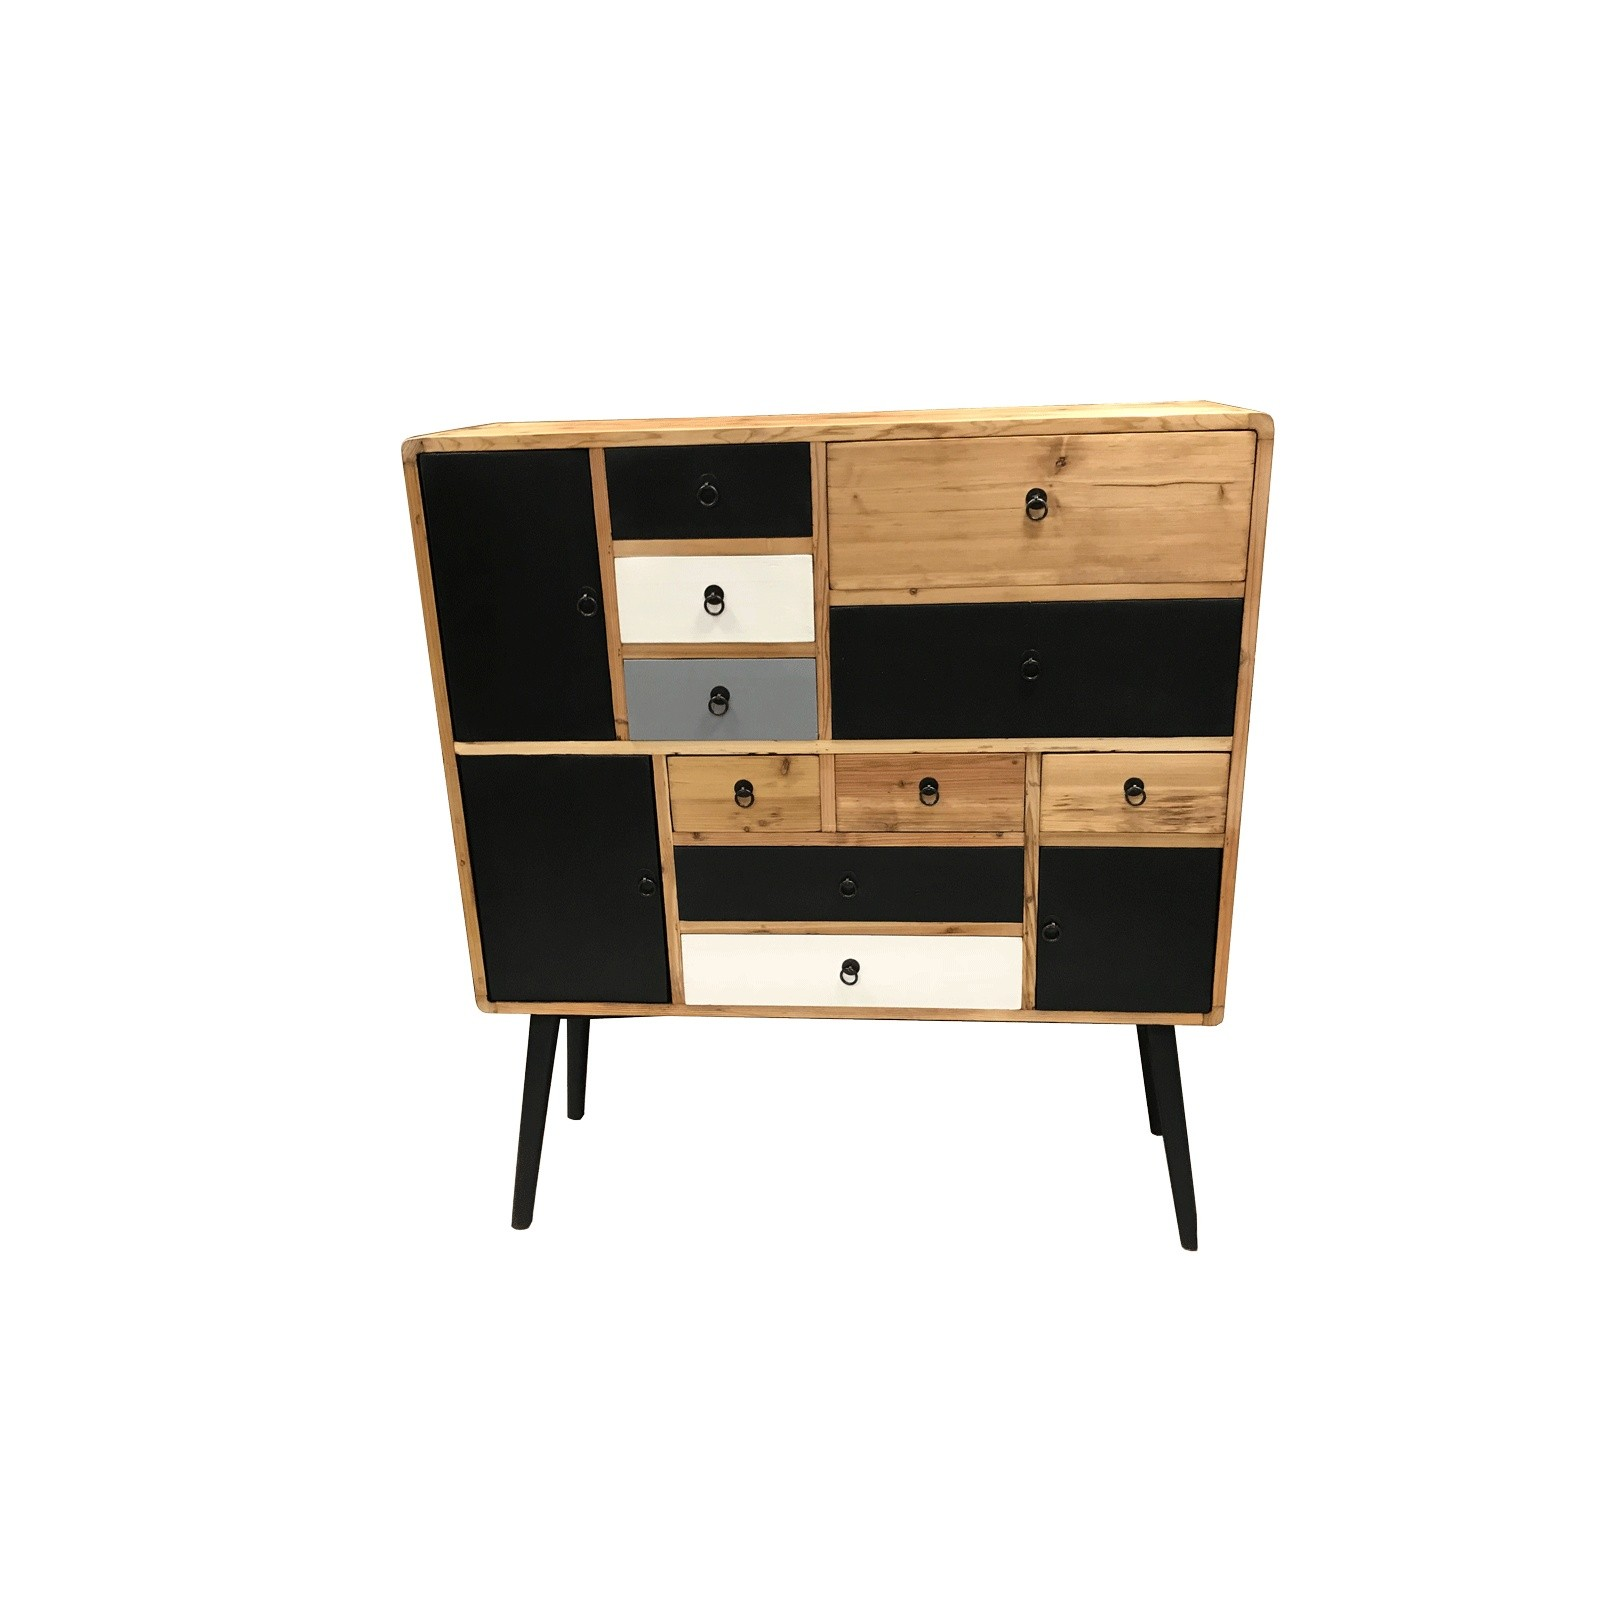 Meuble Scandinave Destockage Meuble Scandinave Multicolore